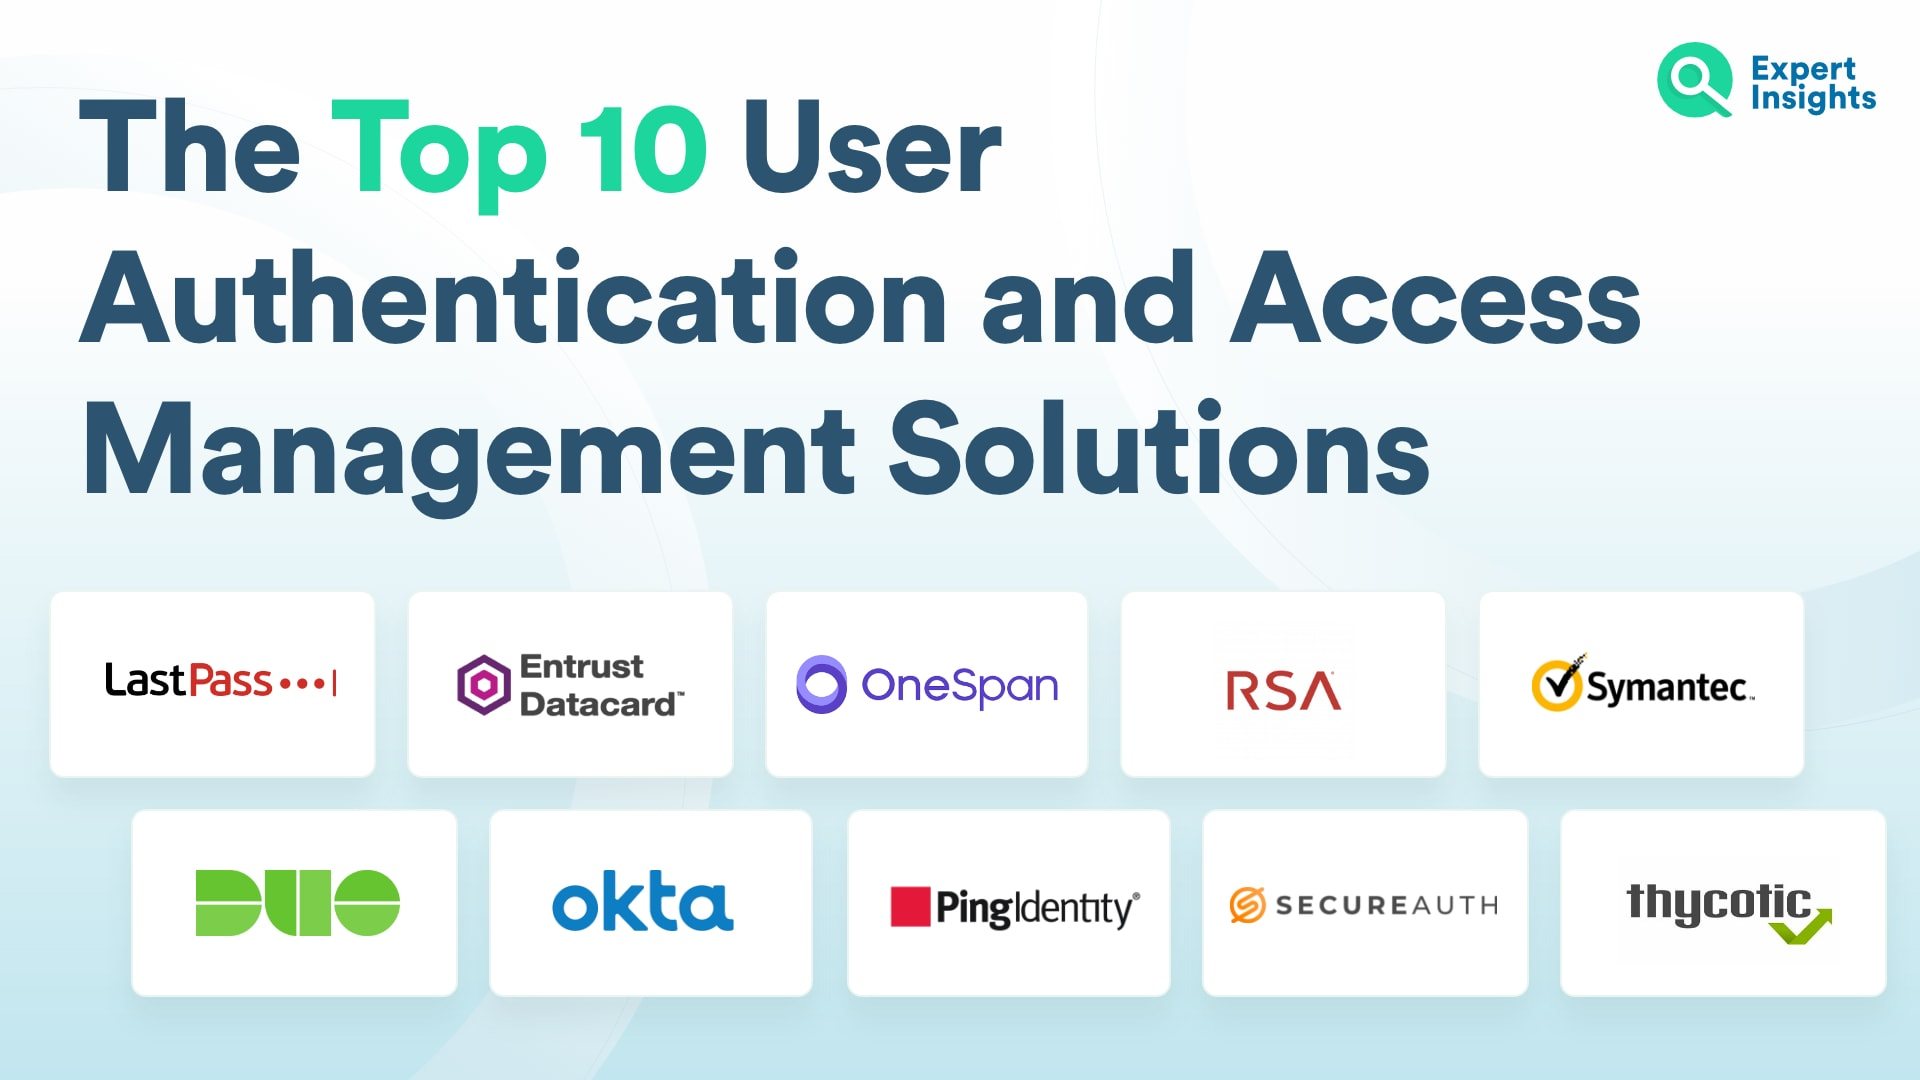 Top Ten User Authentication and Access Management Soltuions | Expert Insights